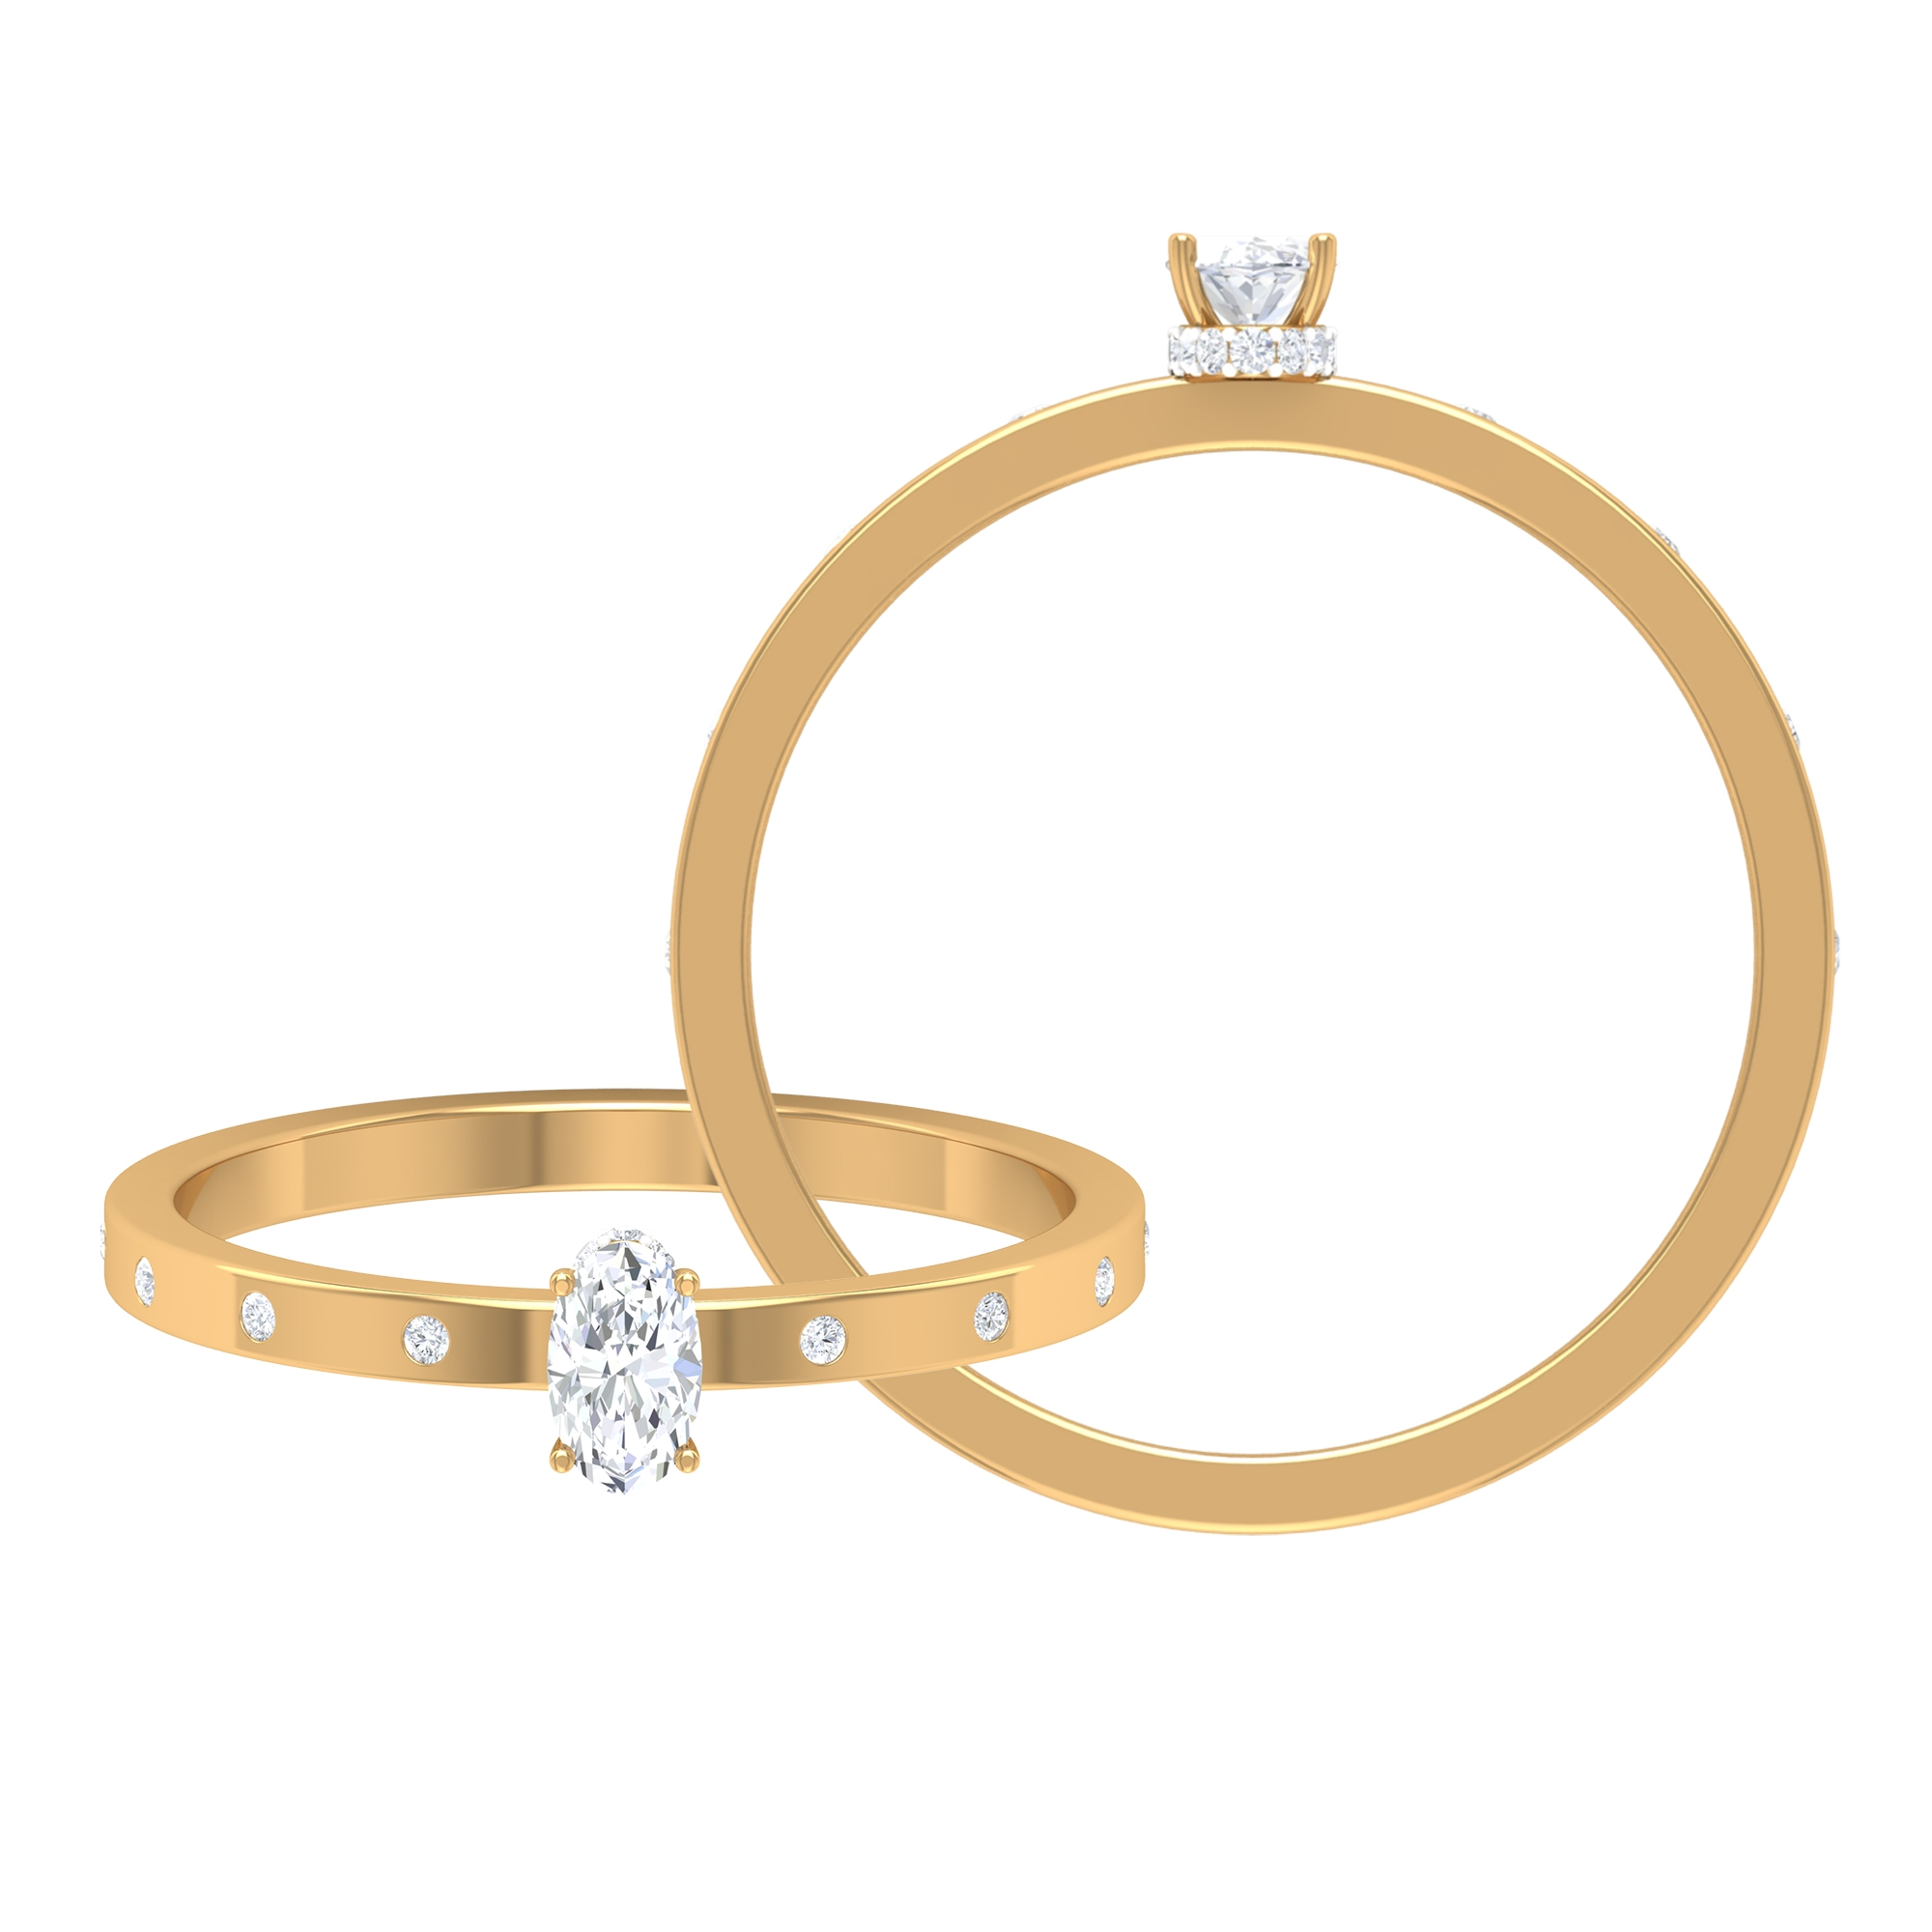 1/4 CT Oval Shape Solitaire Diamond Ring in Hidden Halo with Sleek Accent Diamond